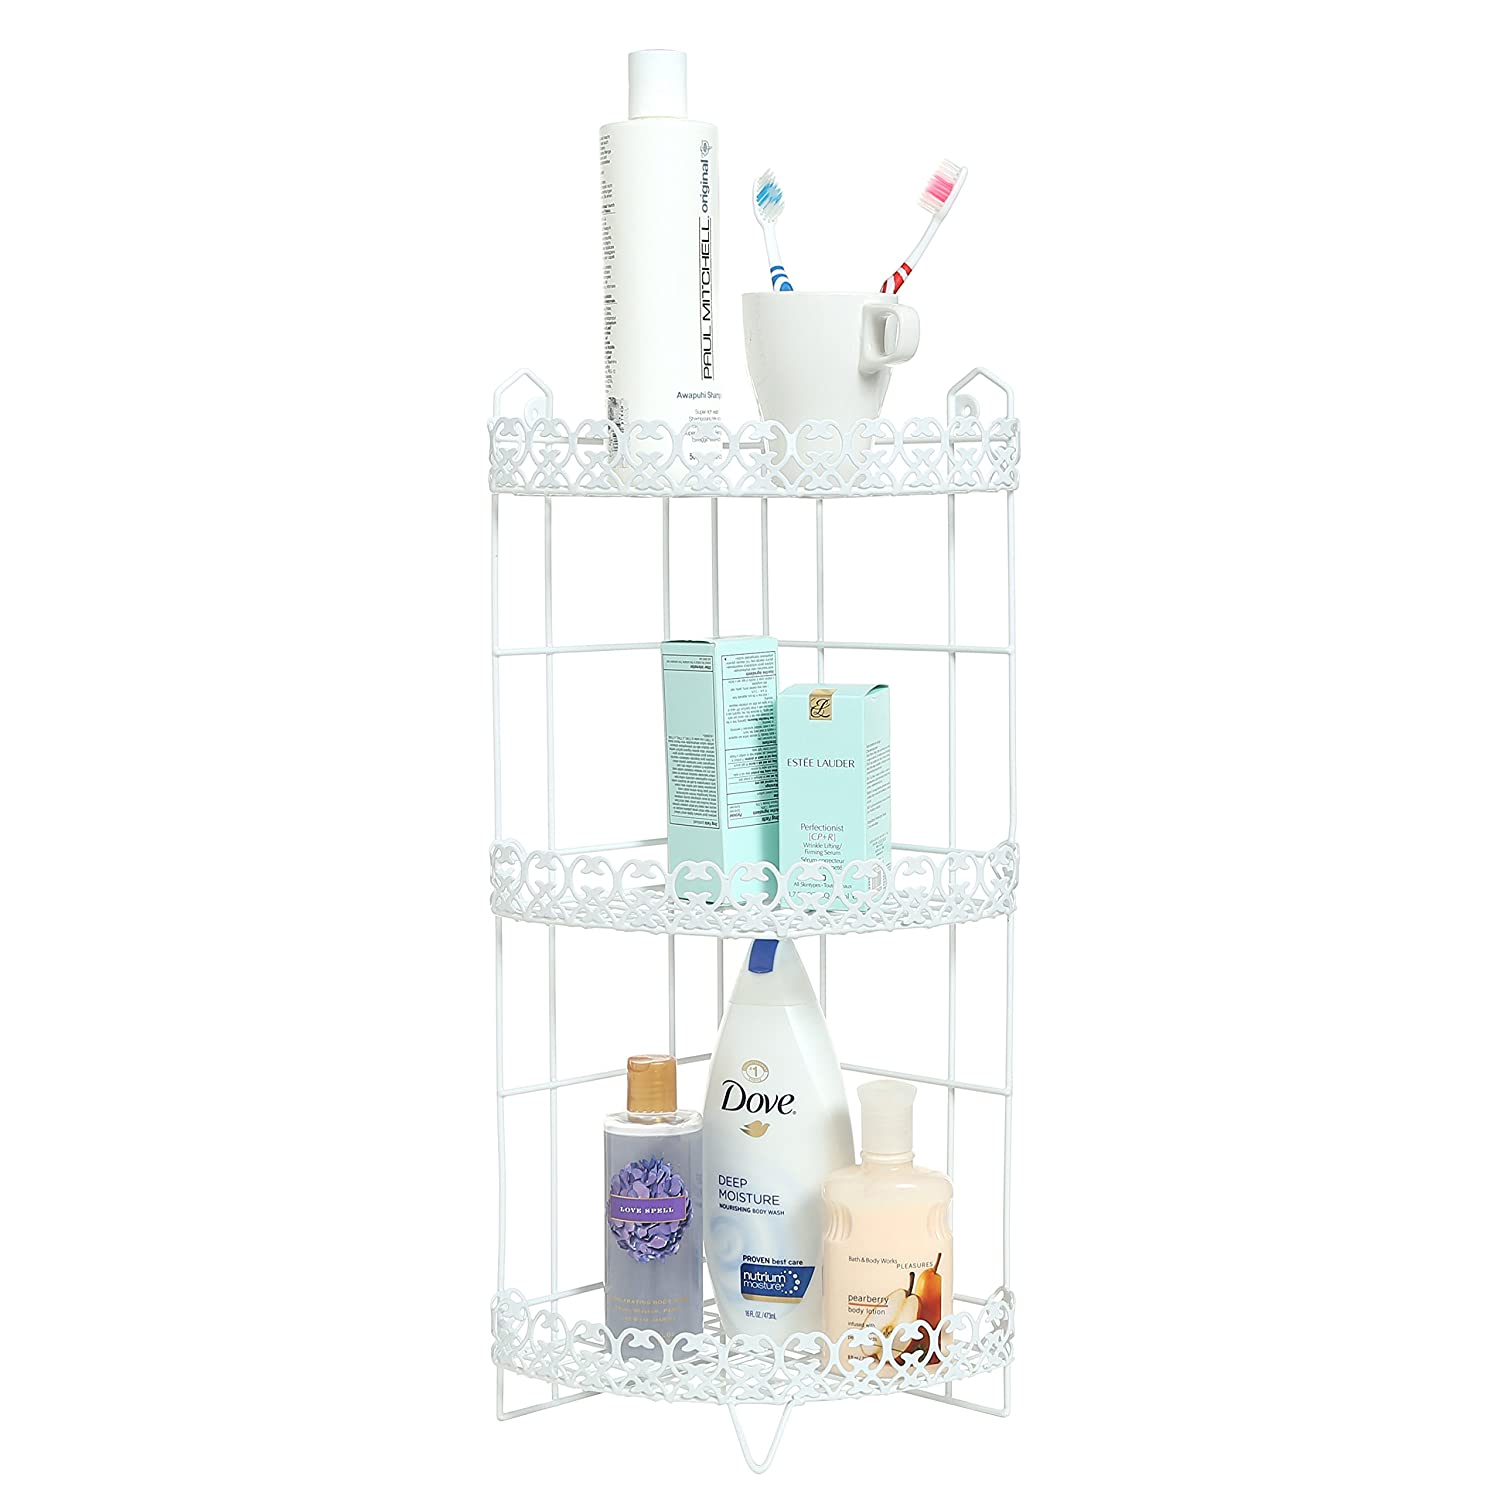 3 Tier Free standing Corner Bathroom Storage Shelf Rack Shower Caddy, White